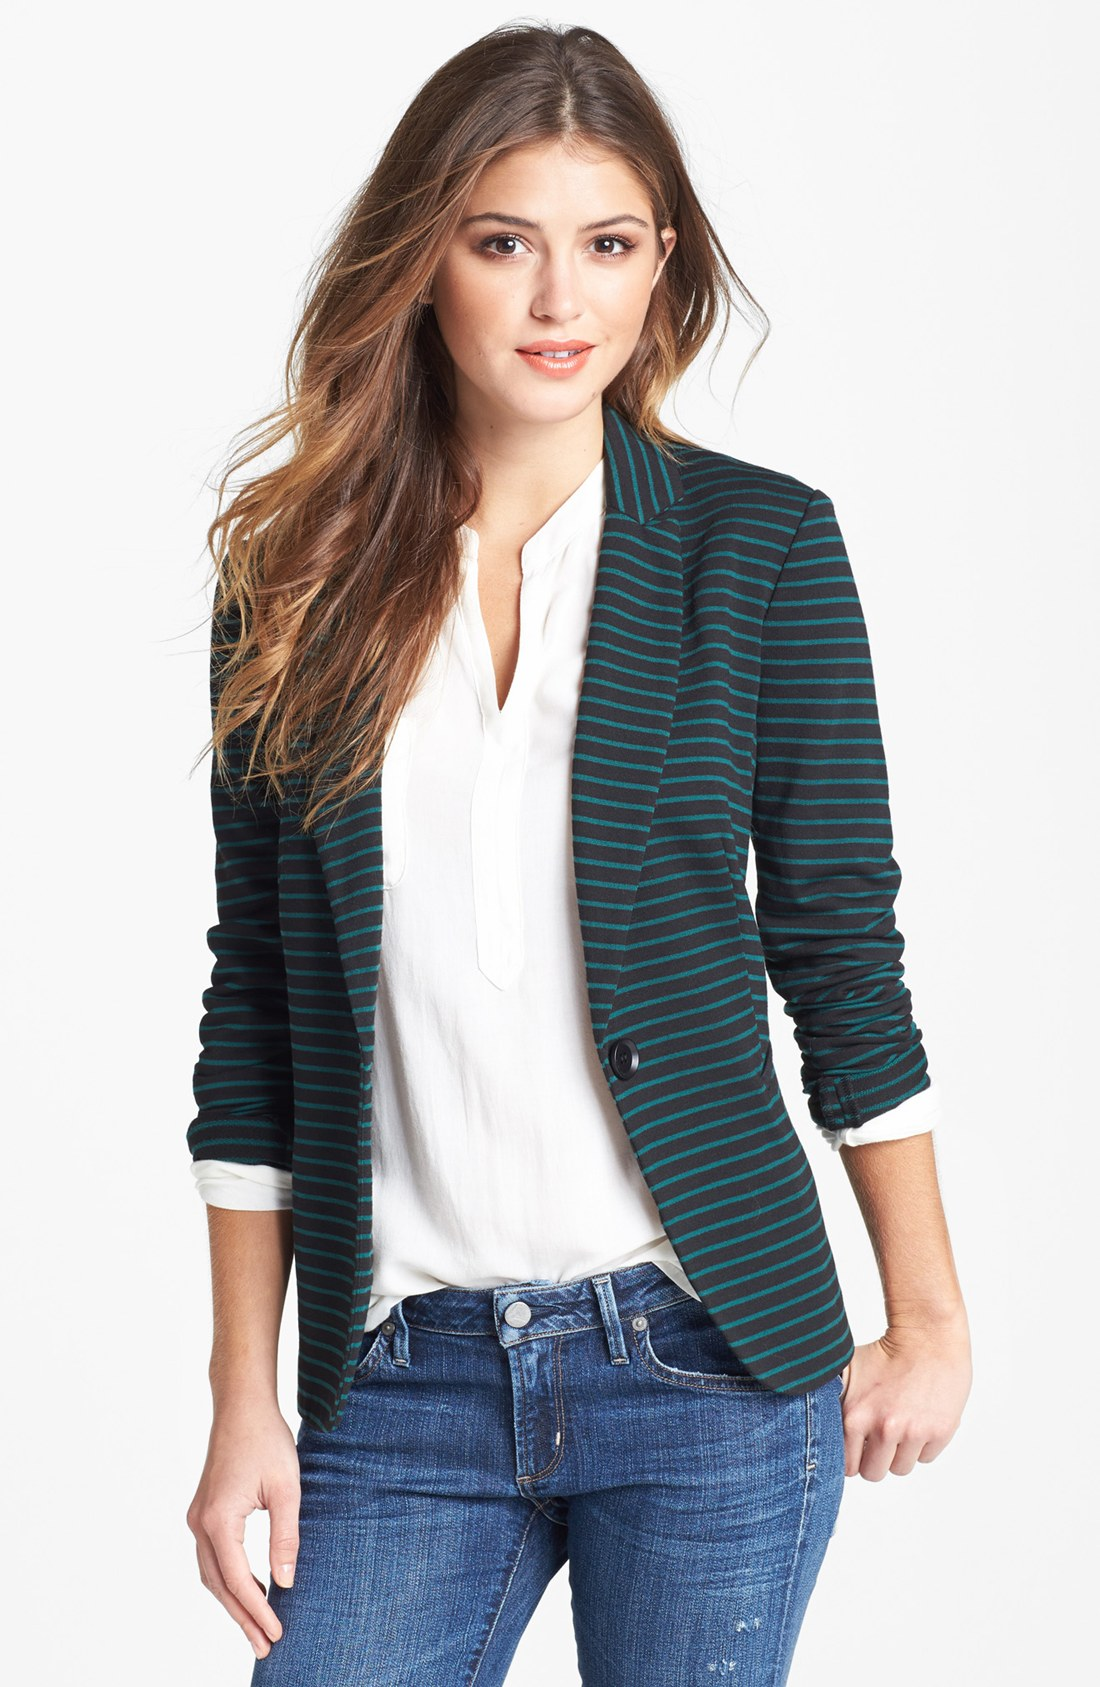 Find a great selection of coats, jackets and blazers for women at techriverku3.gq Shop winter coats, peacoats, raincoats, as well as trenches & blazers from brands like Topshop, Canada Goose, The North Face & more. Free shipping & returns.